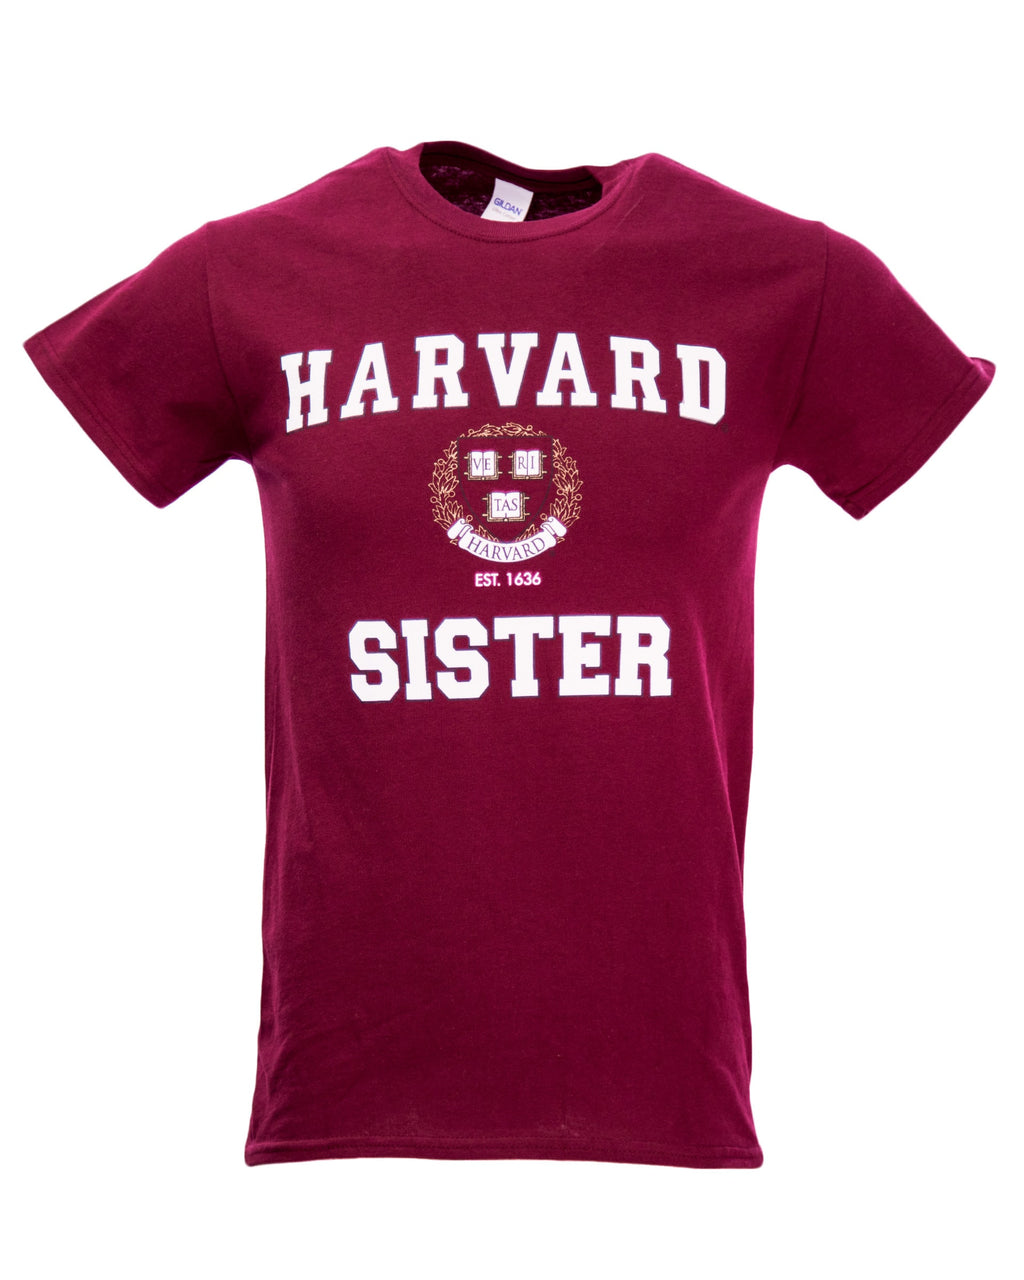 00c77a10 Official Harvard Women's T shirts by The Harvard Shop